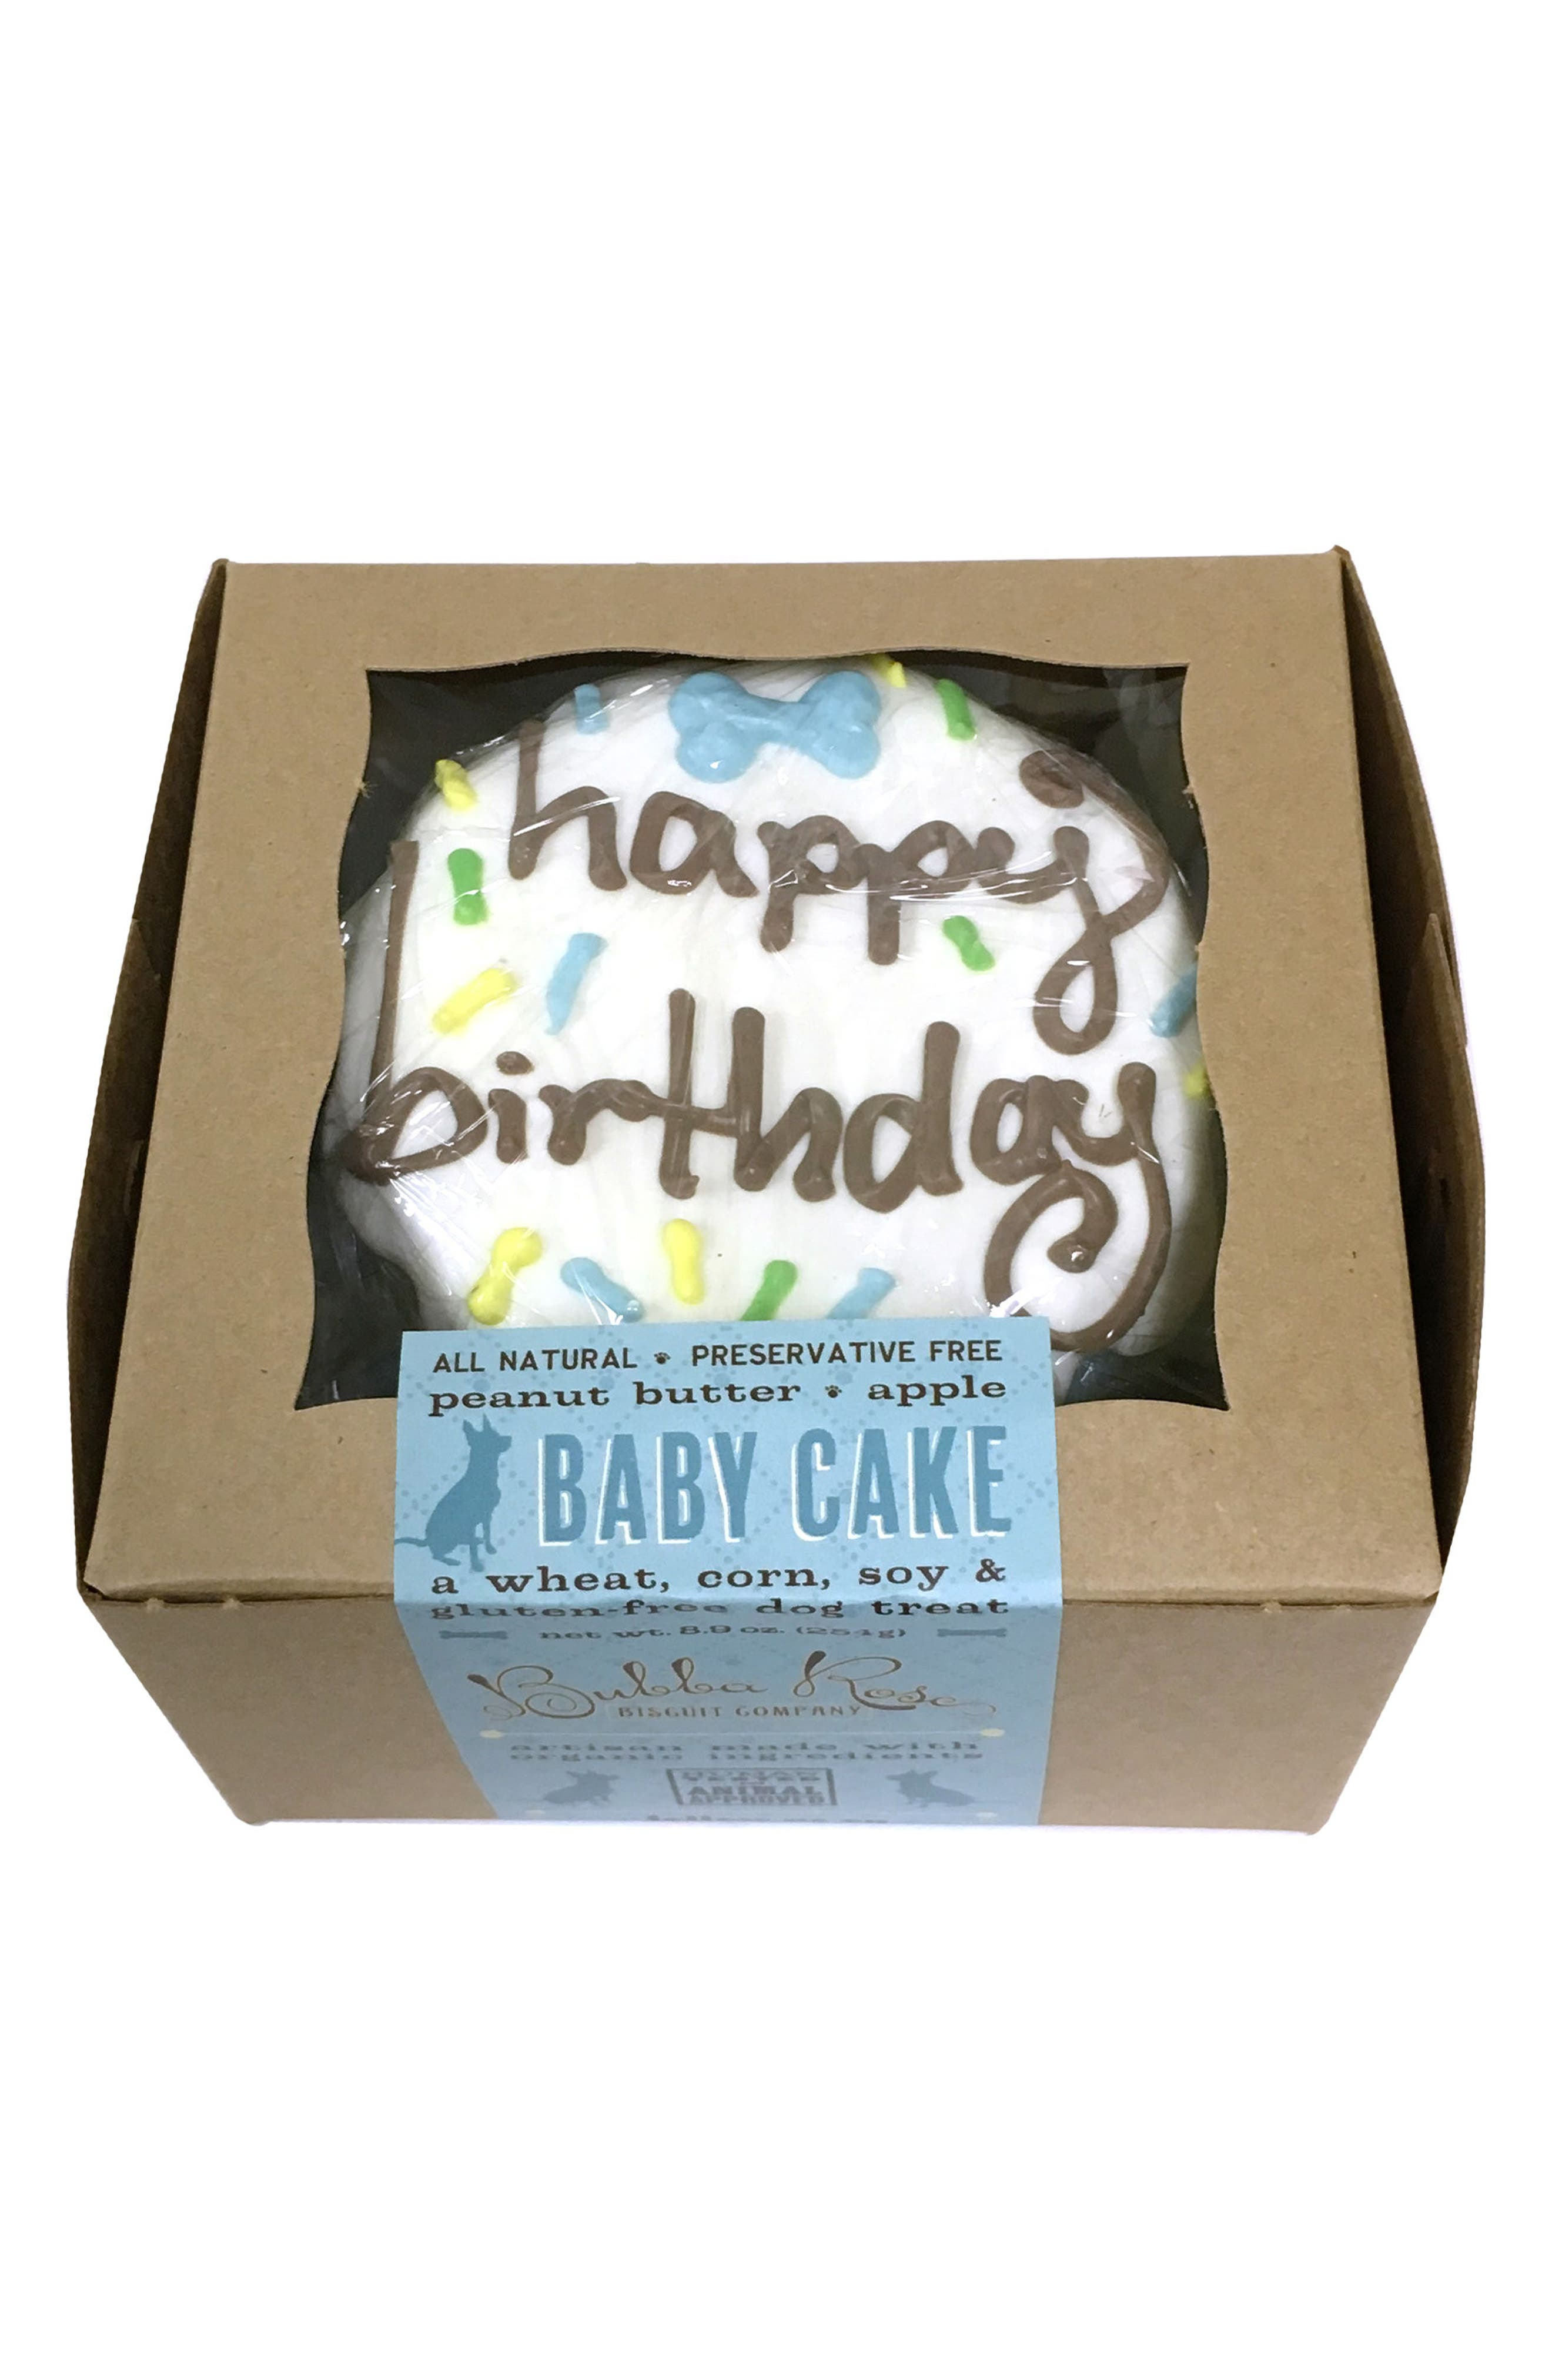 Bubba Rose Biscuit Company Blue Birthday Baby Cake Dog Treat,                             Alternate thumbnail 2, color,                             400